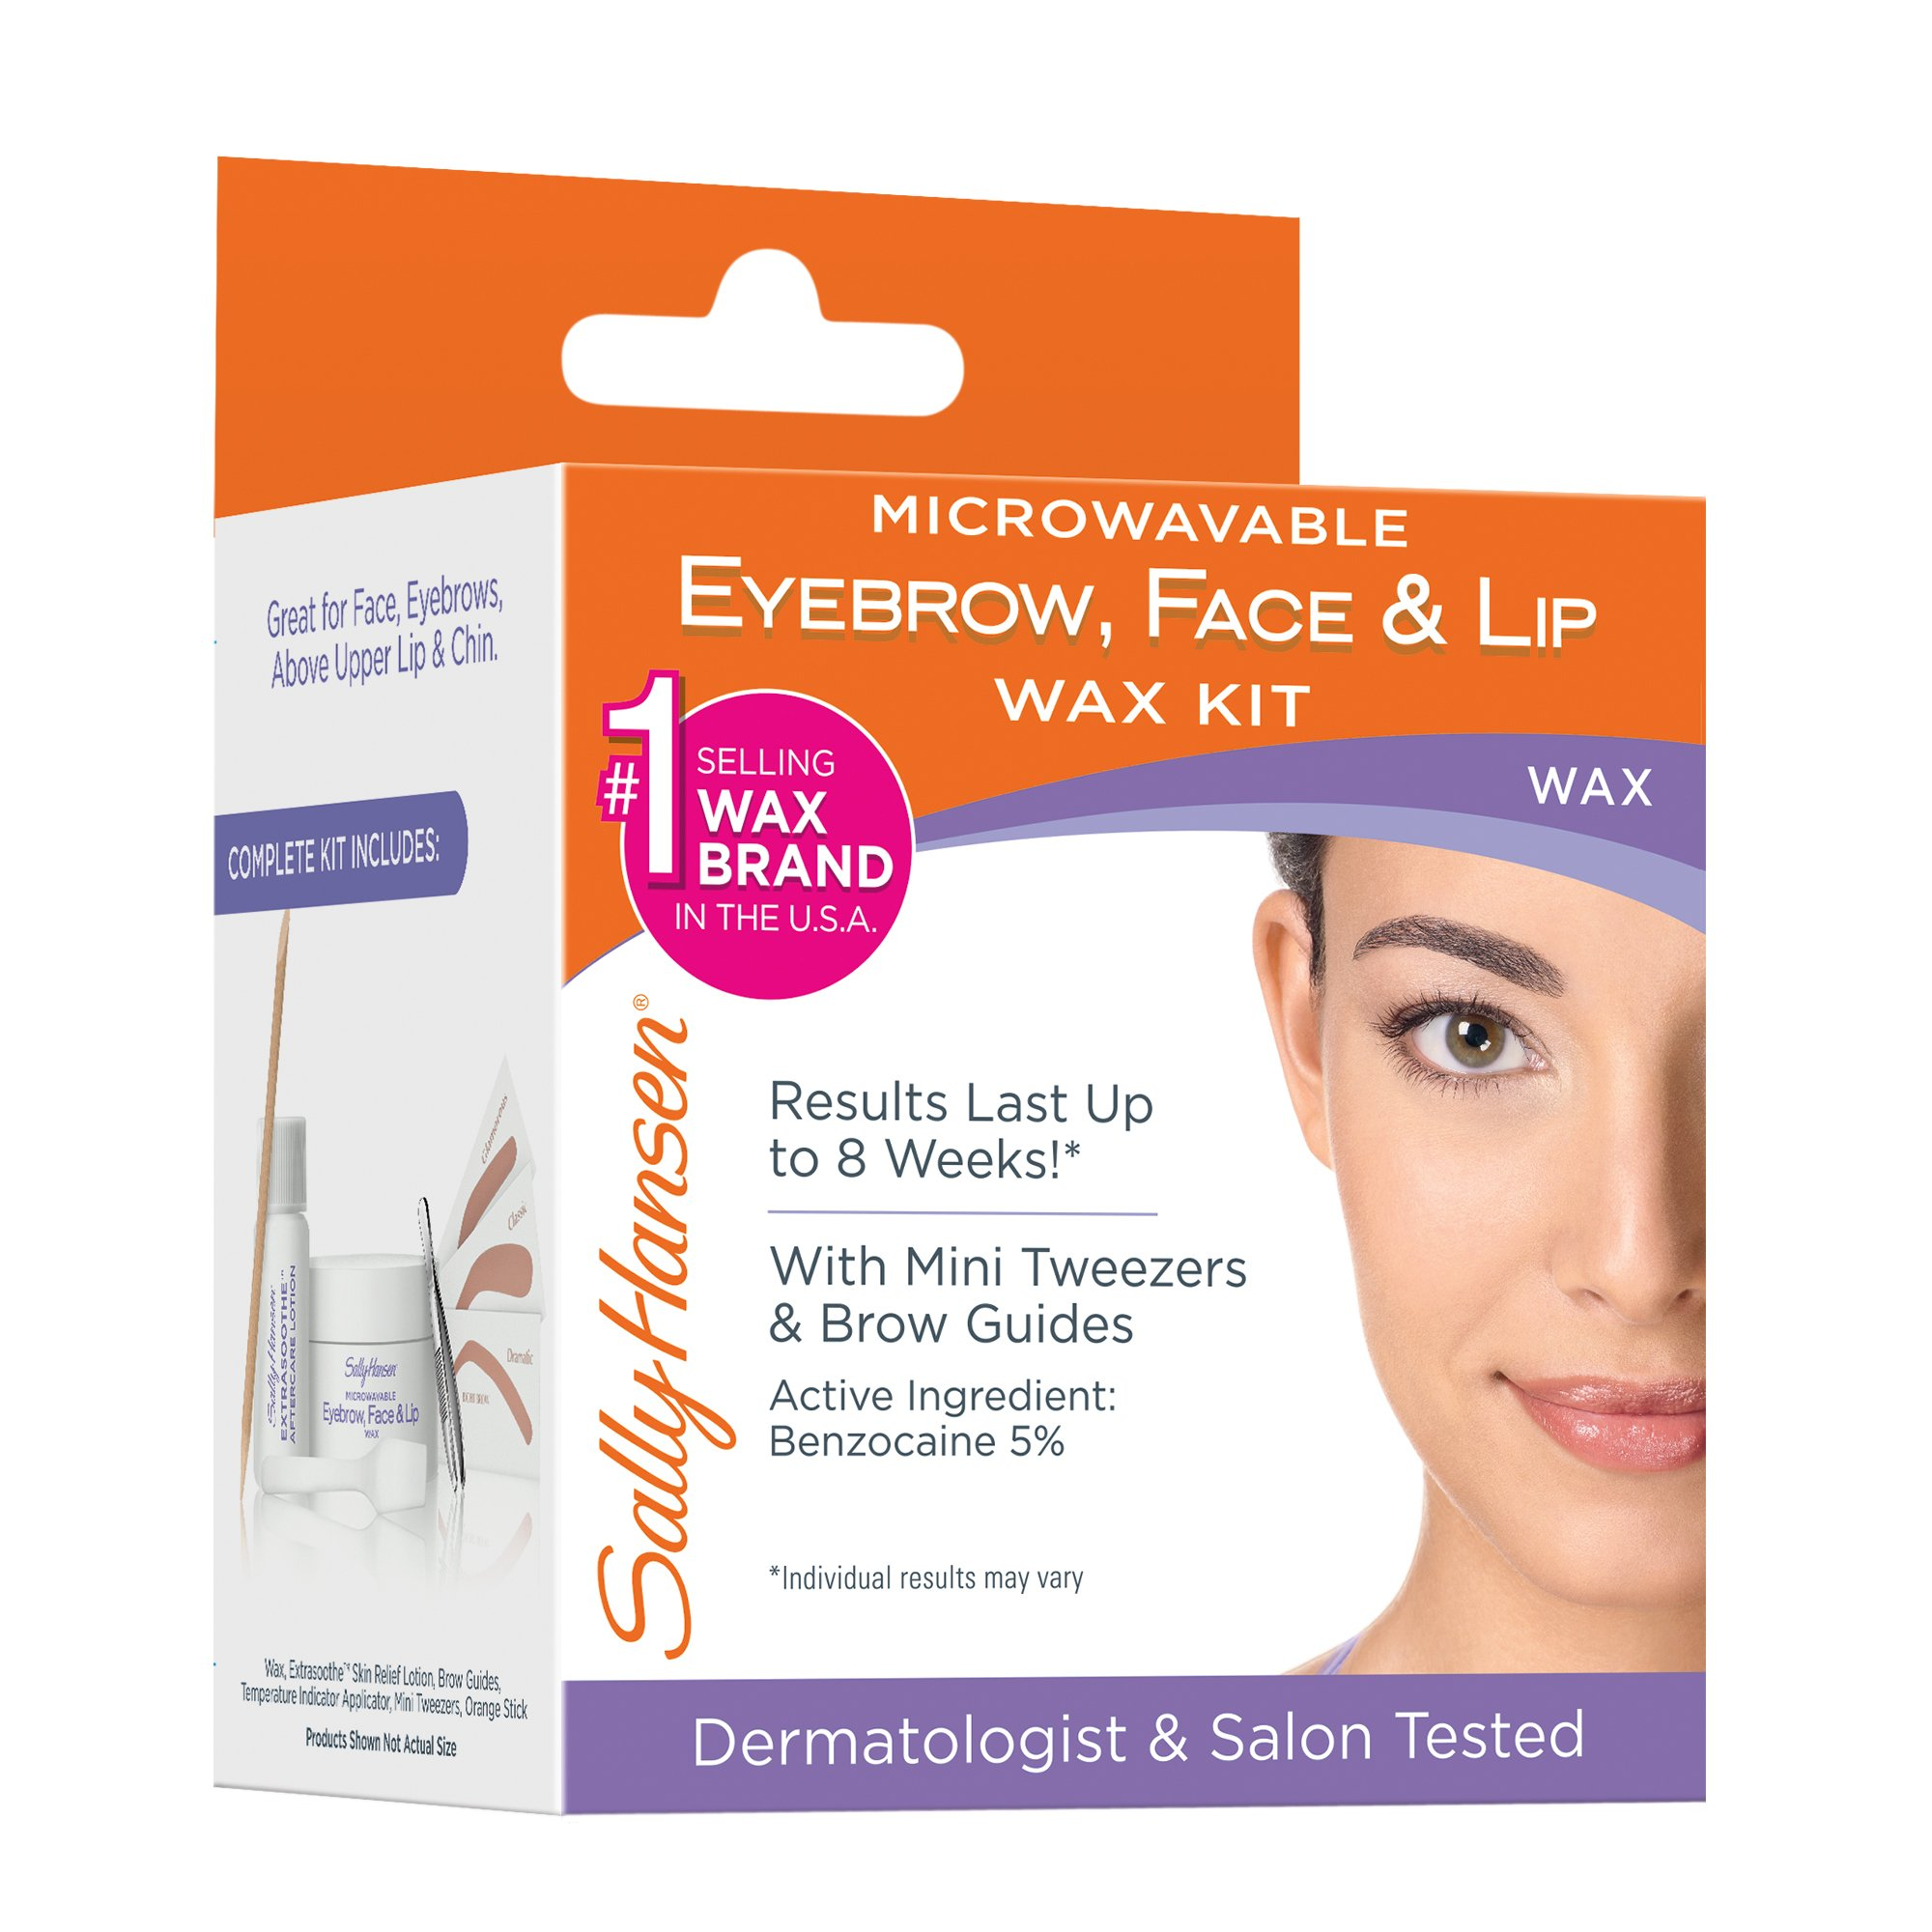 Sally Hansen Microwaveable Eyebrow Face Lip Wax Shop